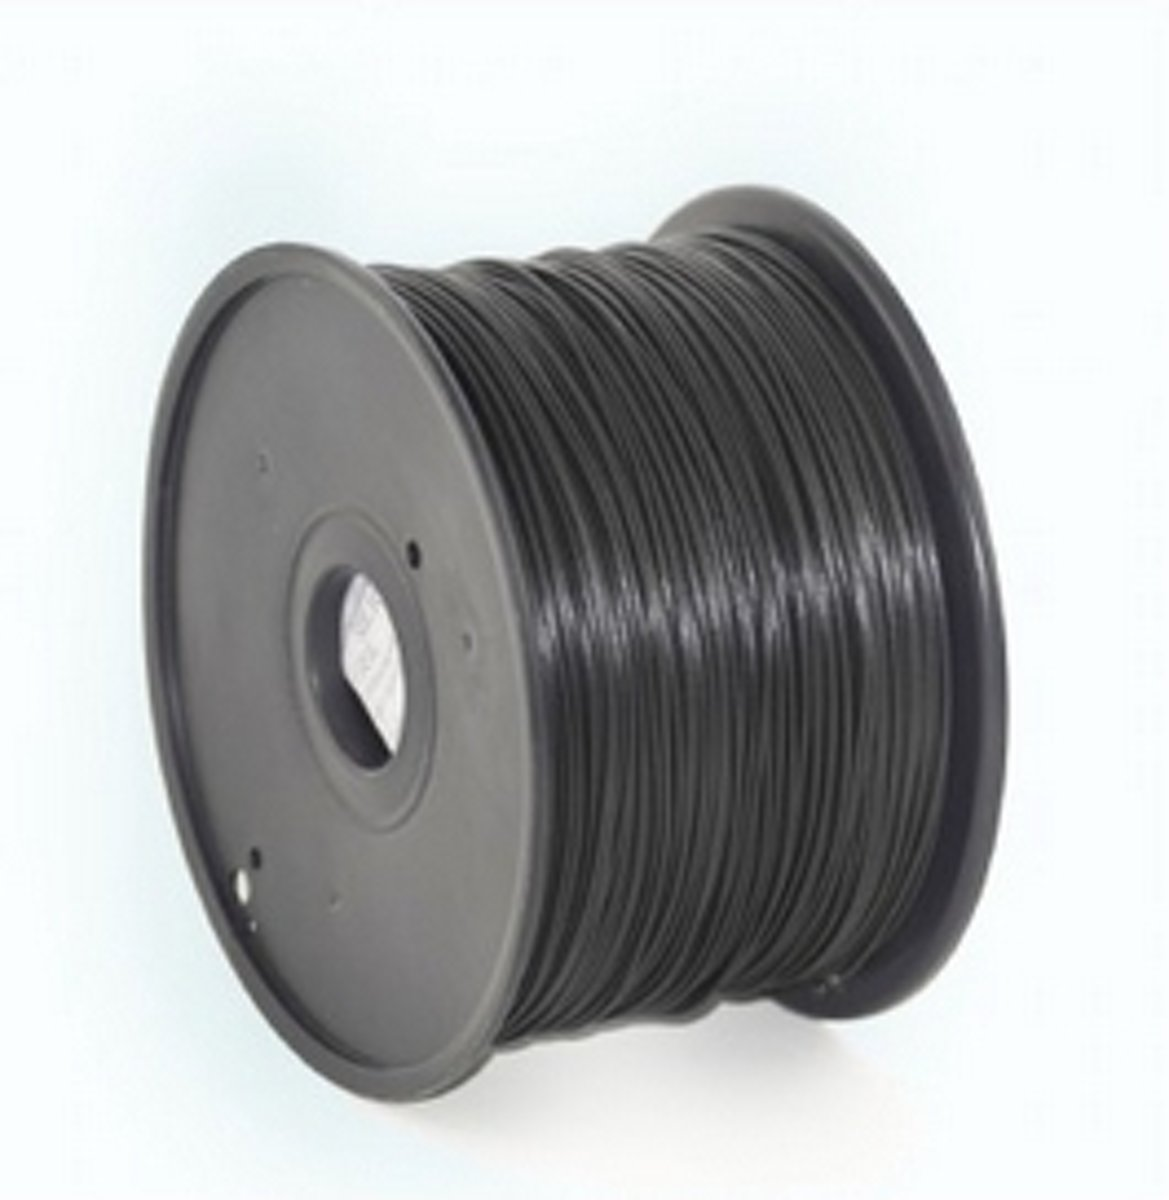 Gembird3 3DP-ABS3-01-BK - Filament ABS, 3 mm, zwart